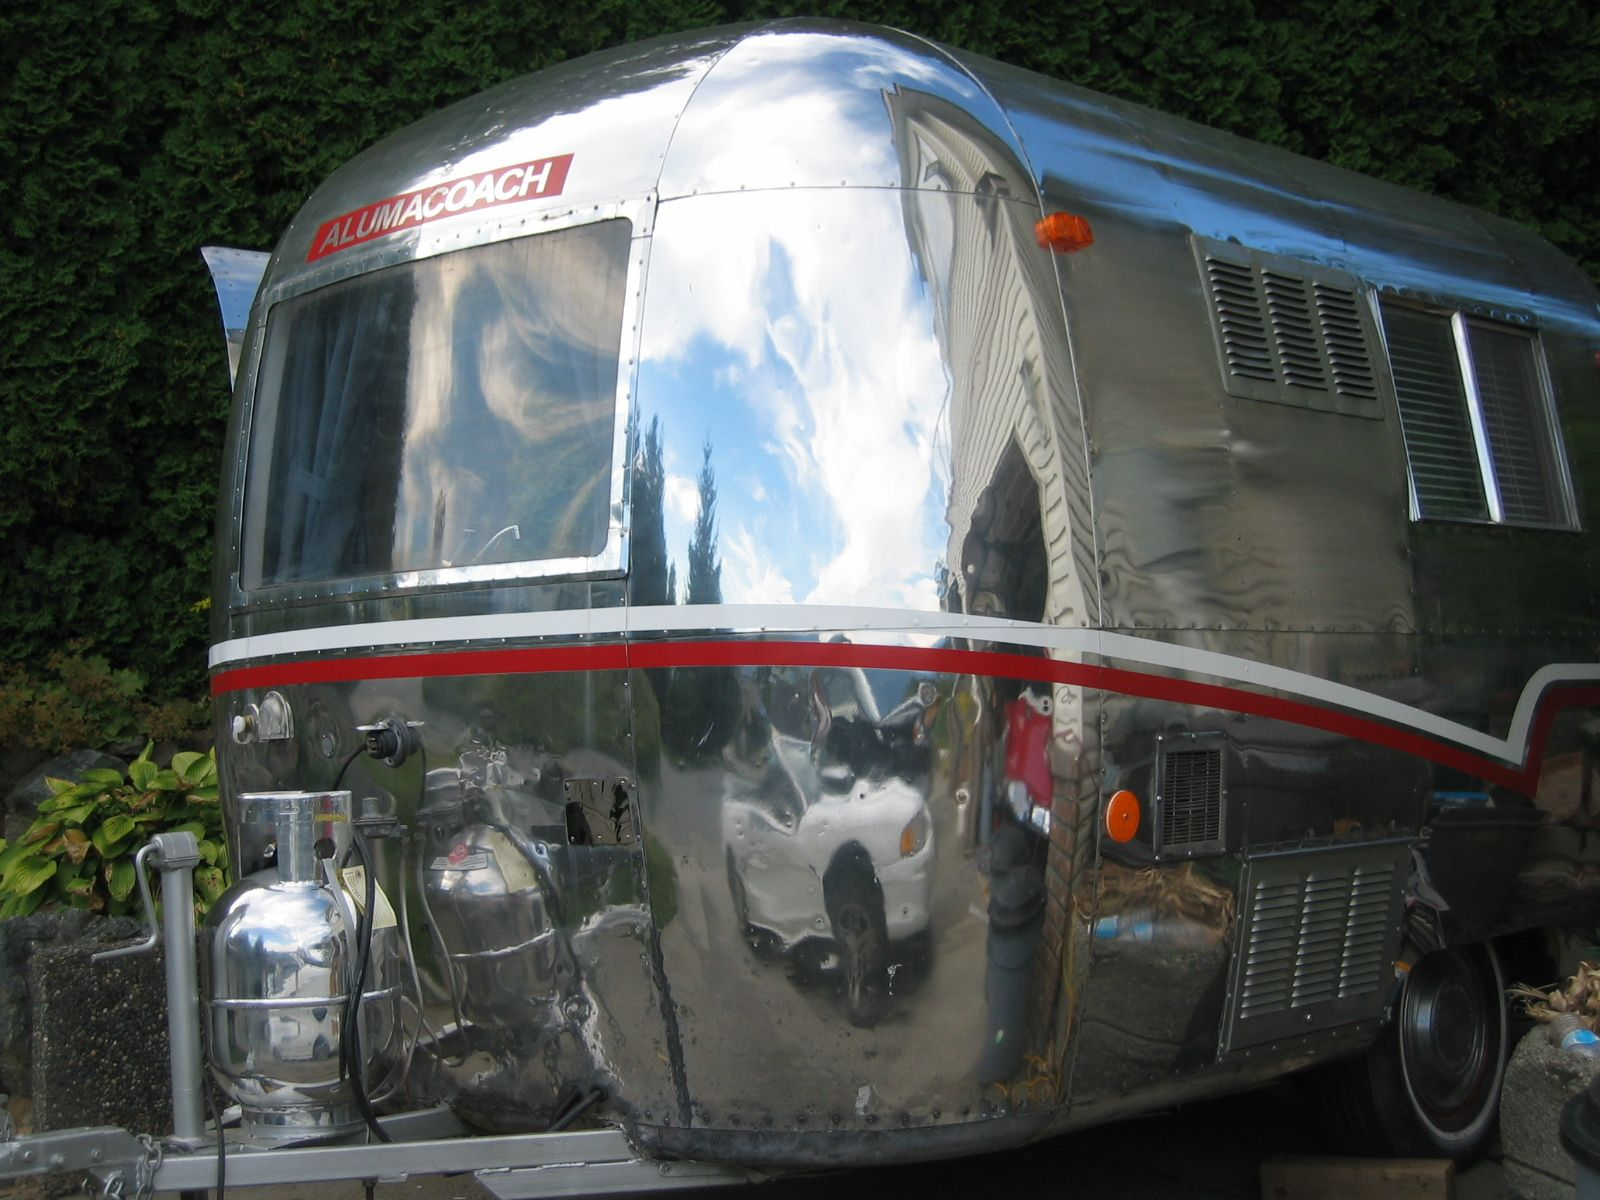 1971 Alumacoach Tin Can Classifieds Tin Can Tourist Vintage Trailers Vintage Airstream